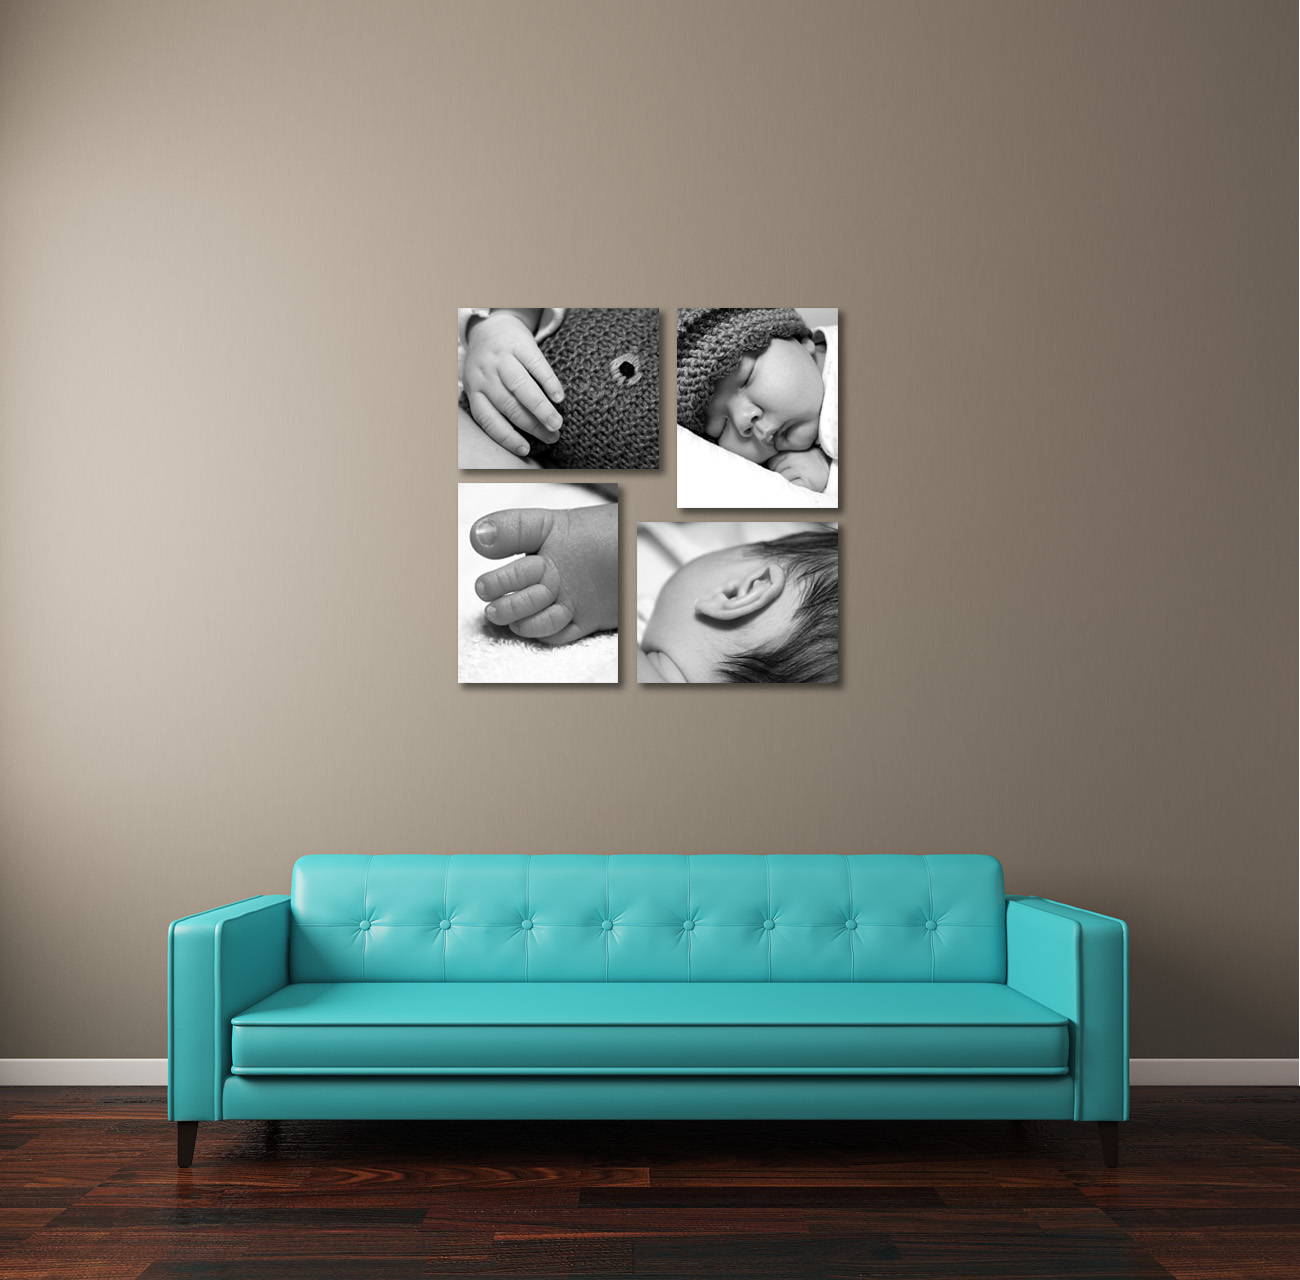 photographs displayed above sofa